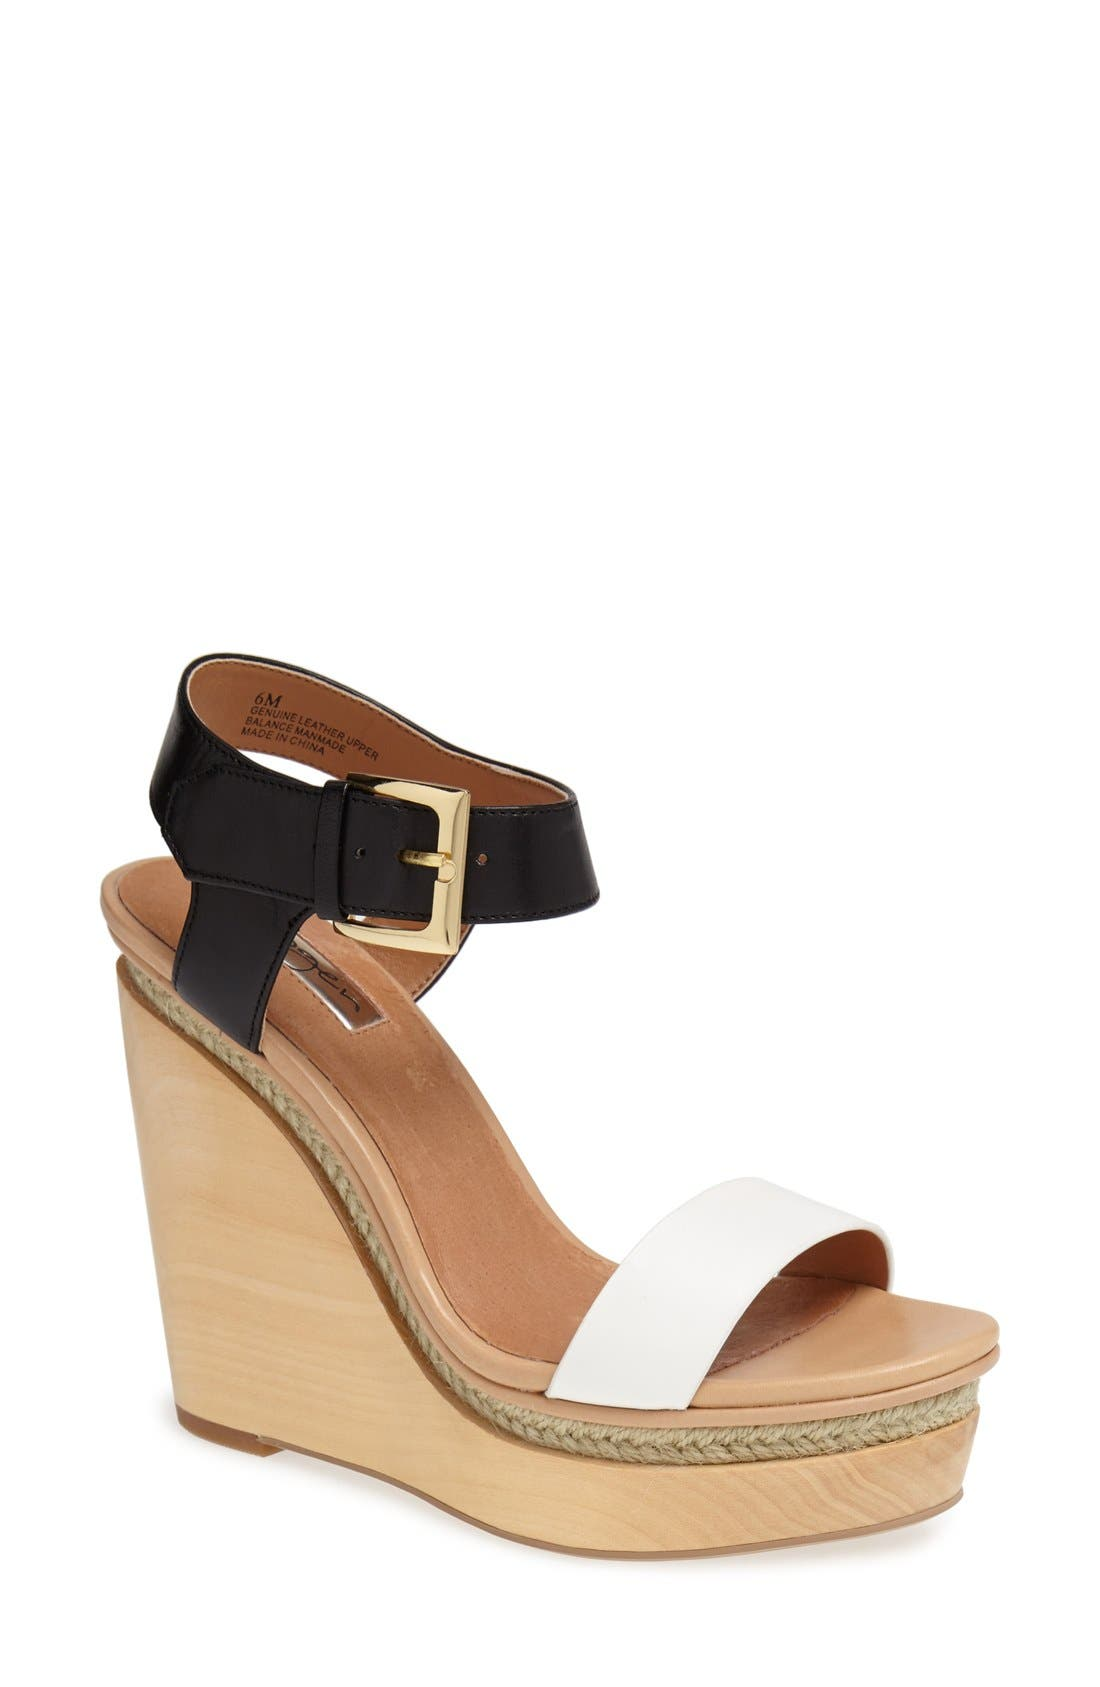 Main Image - HALOGEN JANAE WEDGE SANDAL